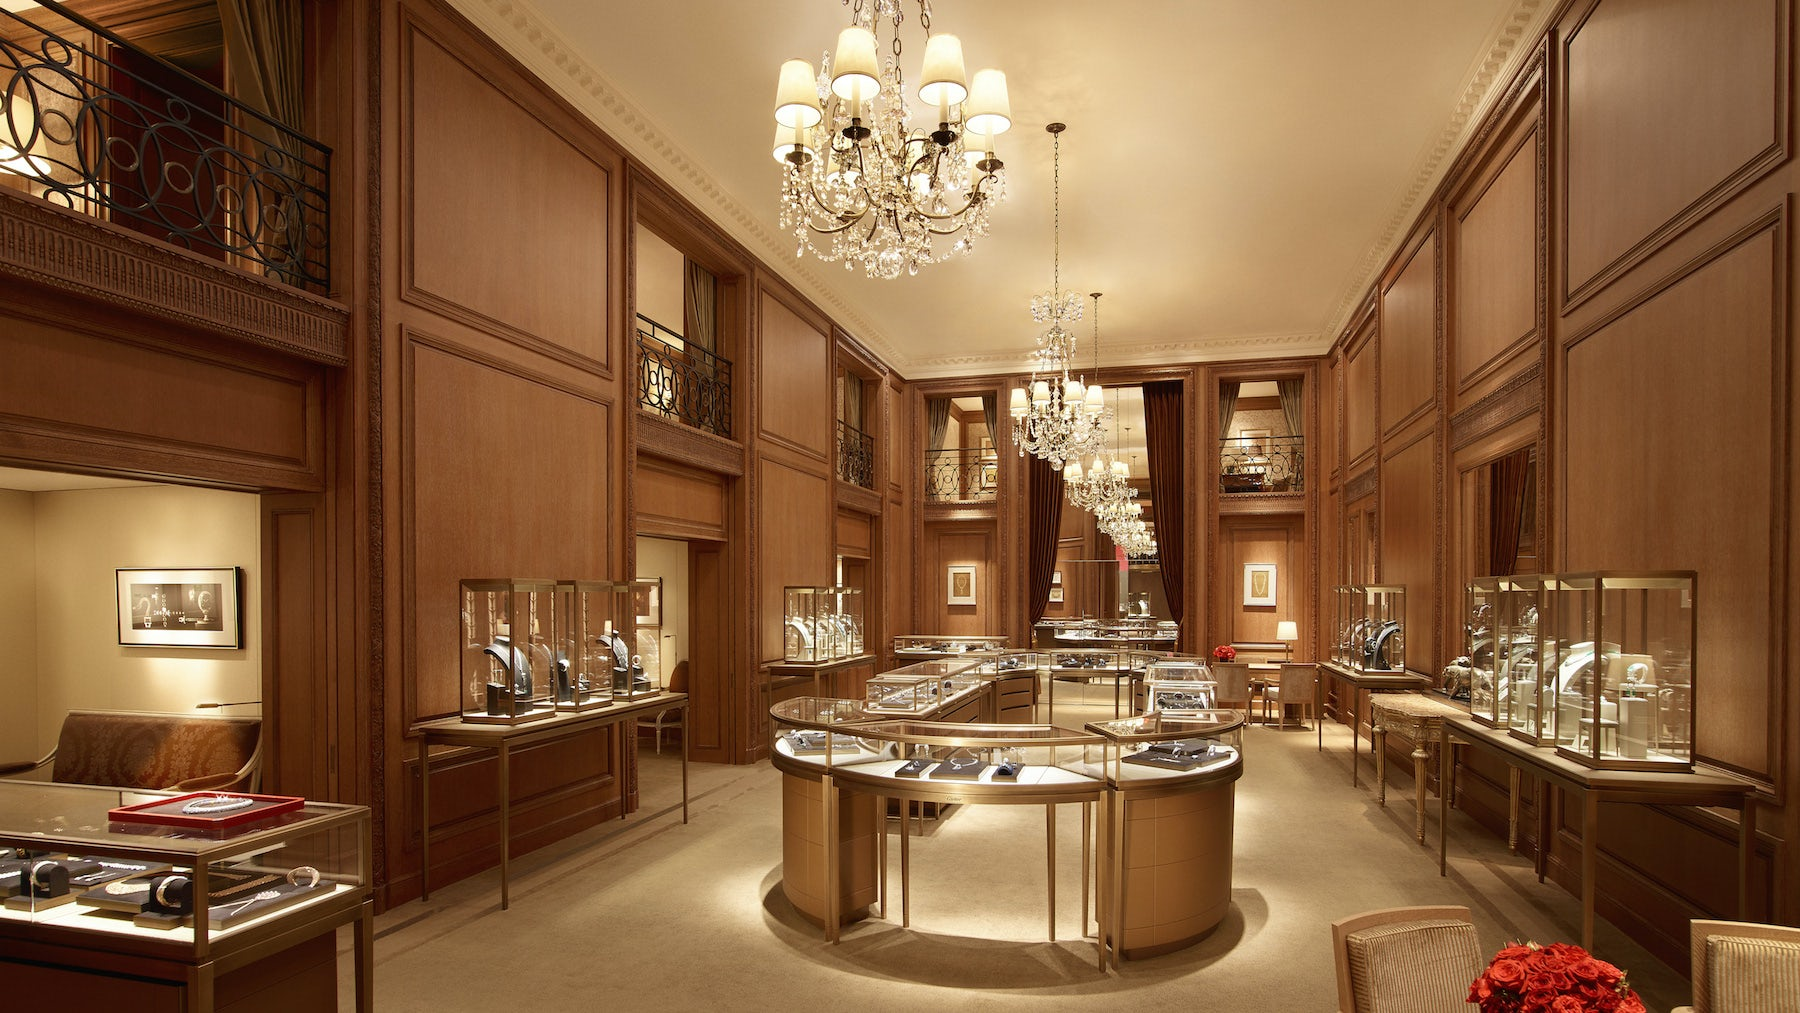 The Oak Room inside Cartier's renovated mansion on 651 Fifth Avenue | Photo: Laziz Hamani/Cartier